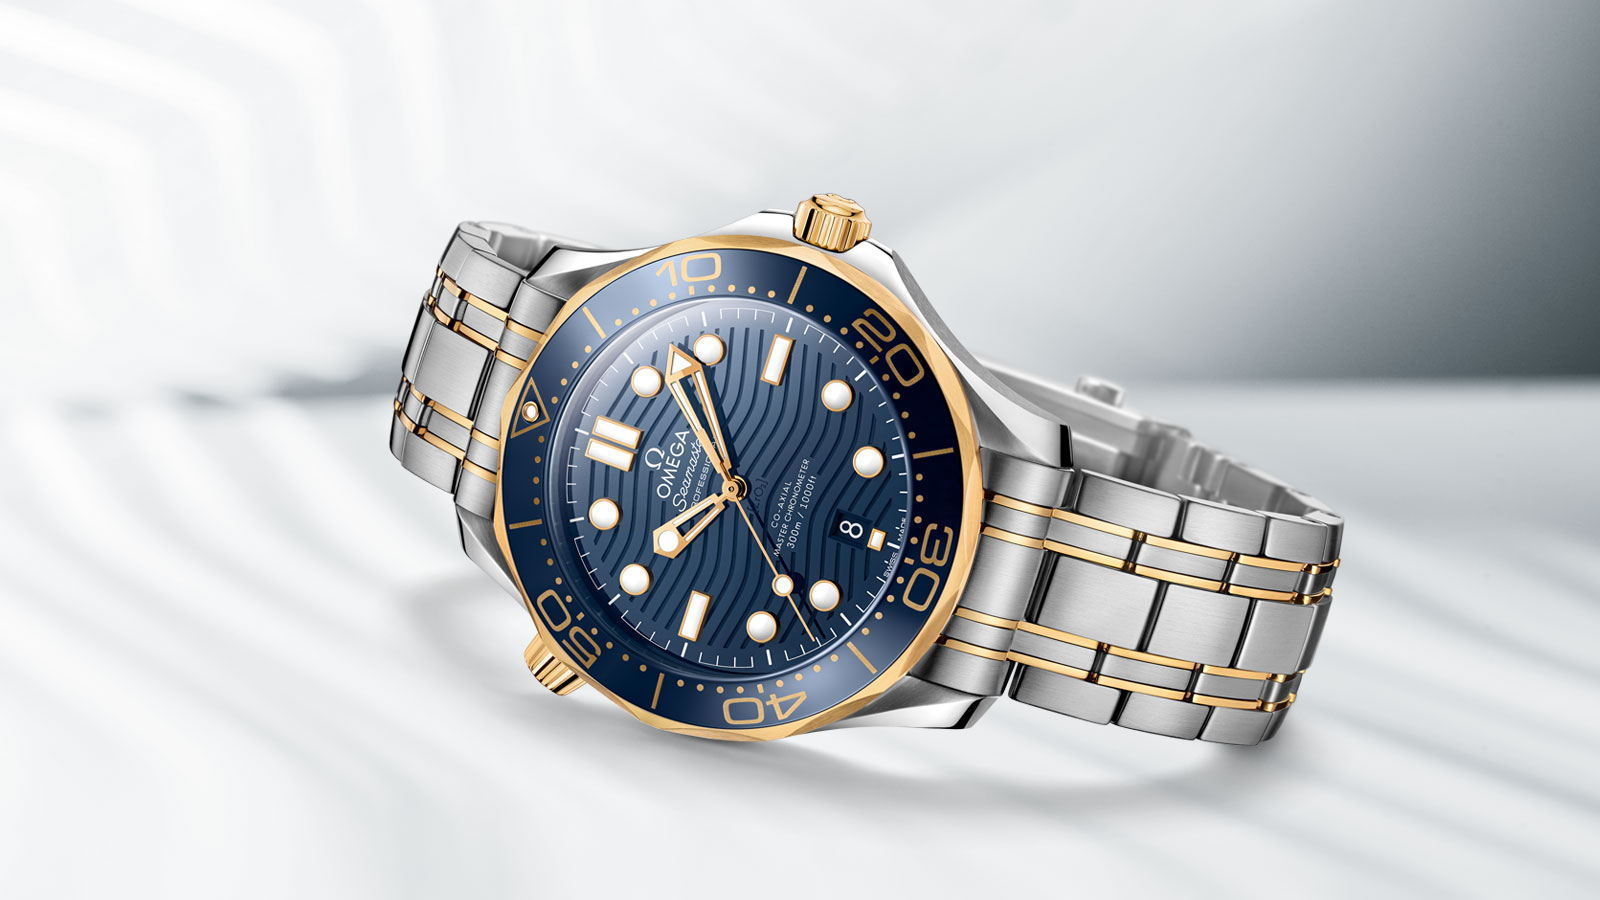 Seamaster Diver 300m watch in yellow gold and steel with its blue dial and bezel